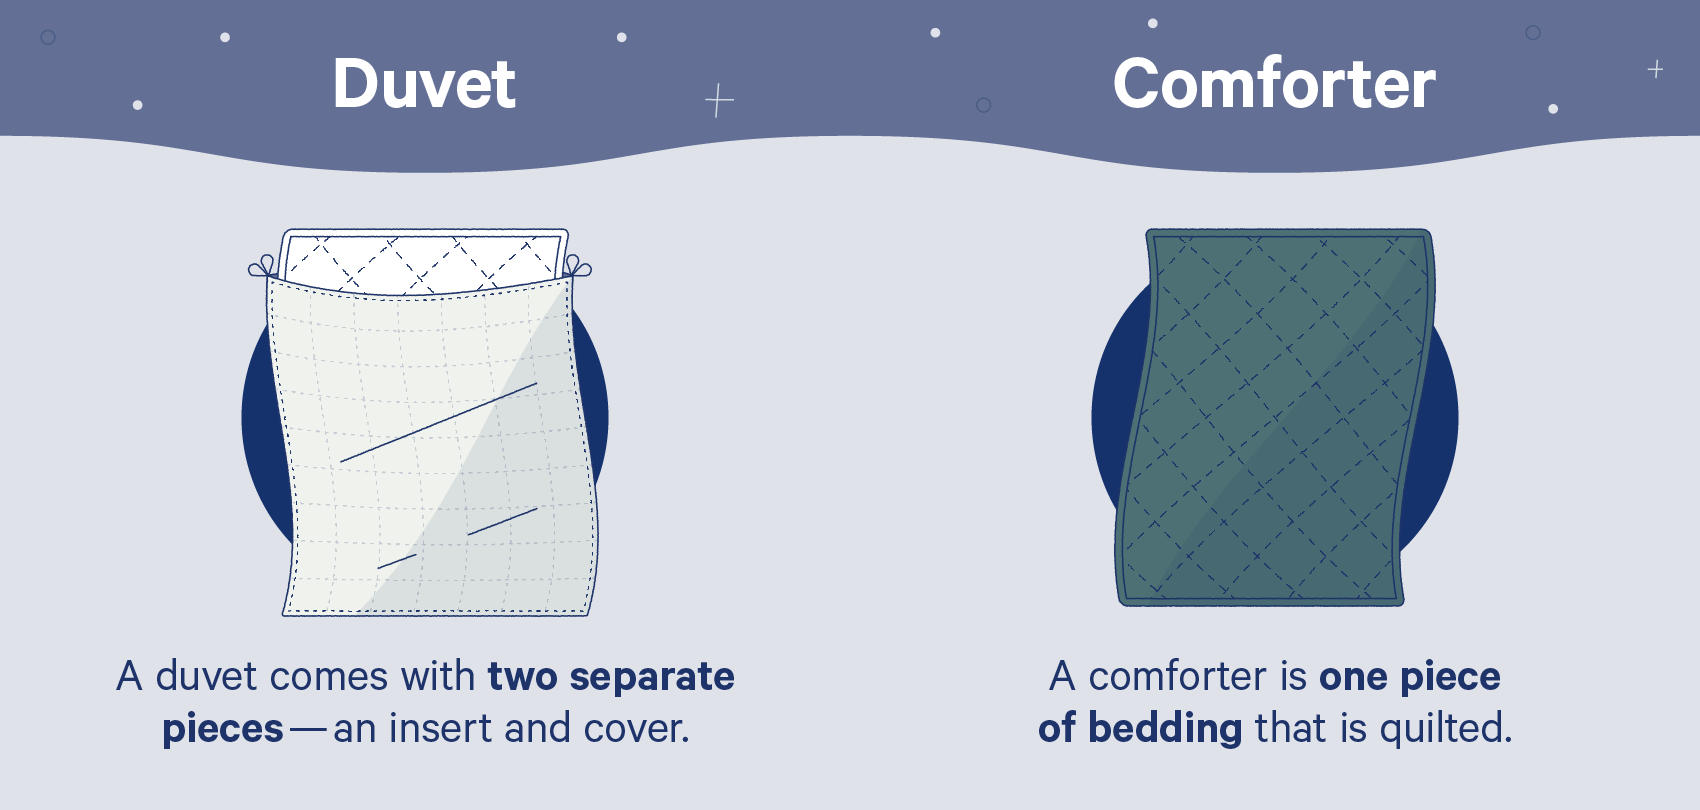 A duvet comes with two separate pieces and a comforter is one piece of bedding.